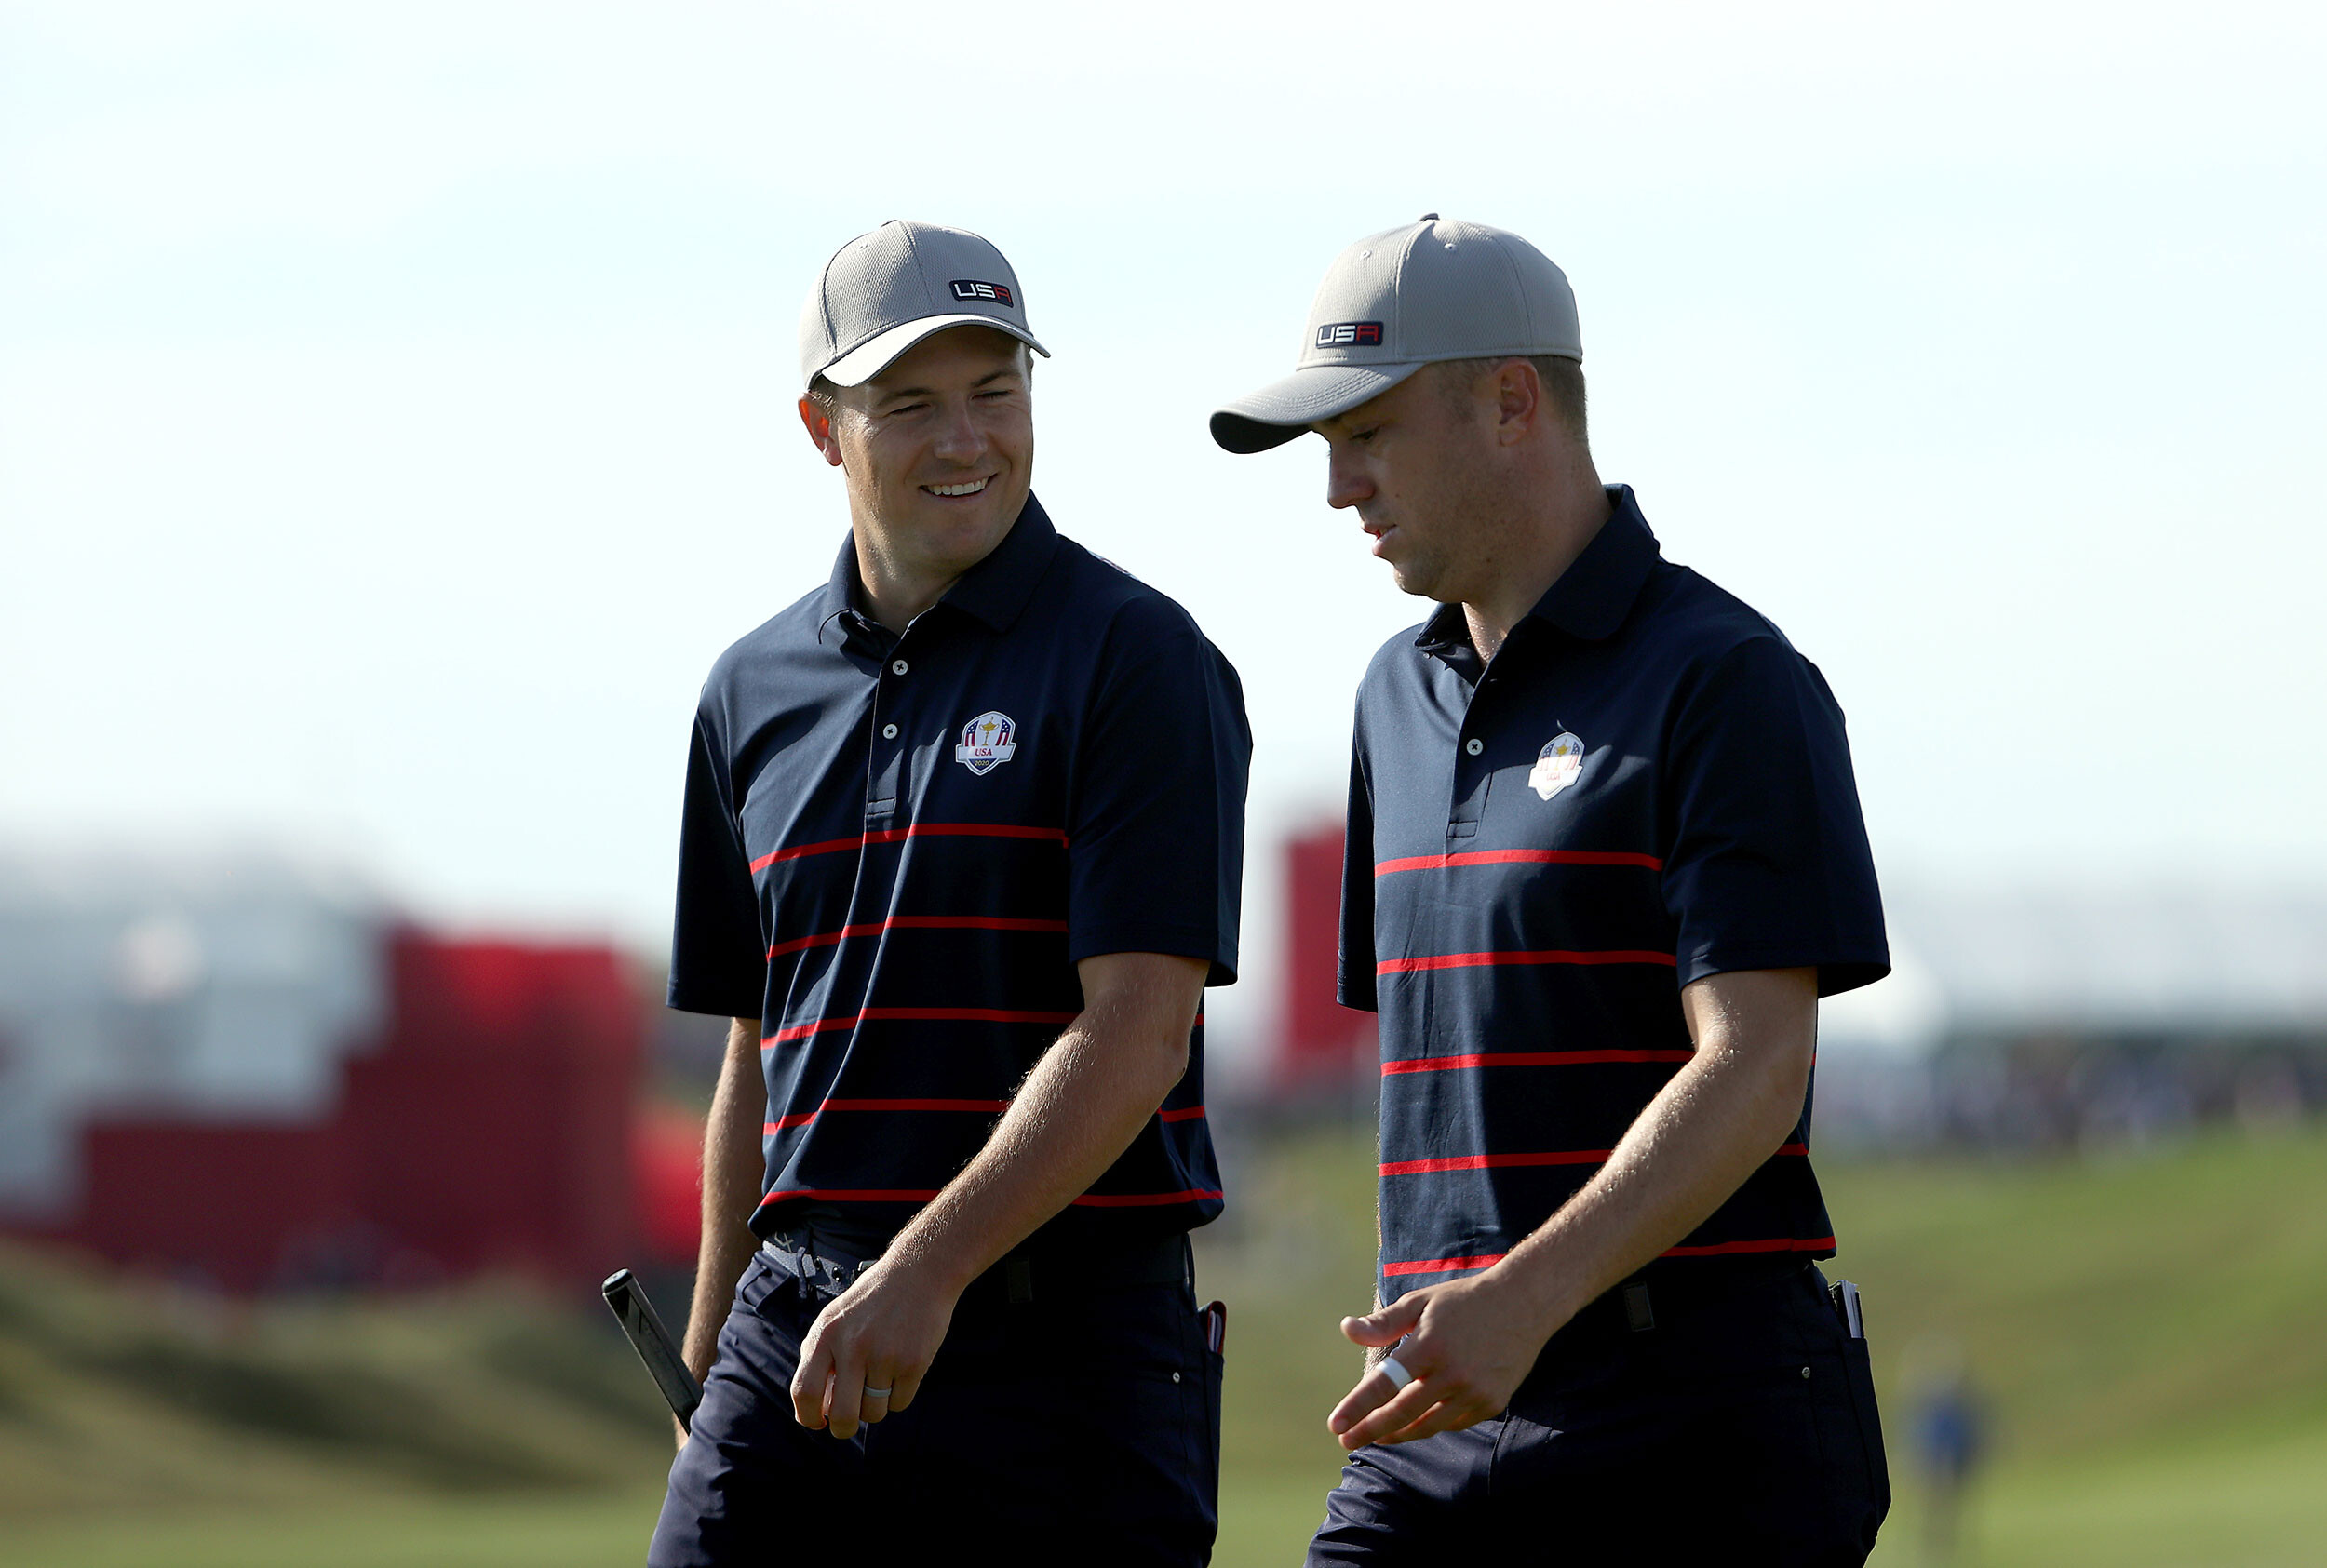 <i>Patrick Smith/Getty Images</i><br/>Jordan Spieth and Thomas walk during Friday Morning Foursome Matches of the 43rd Ryder Cup.